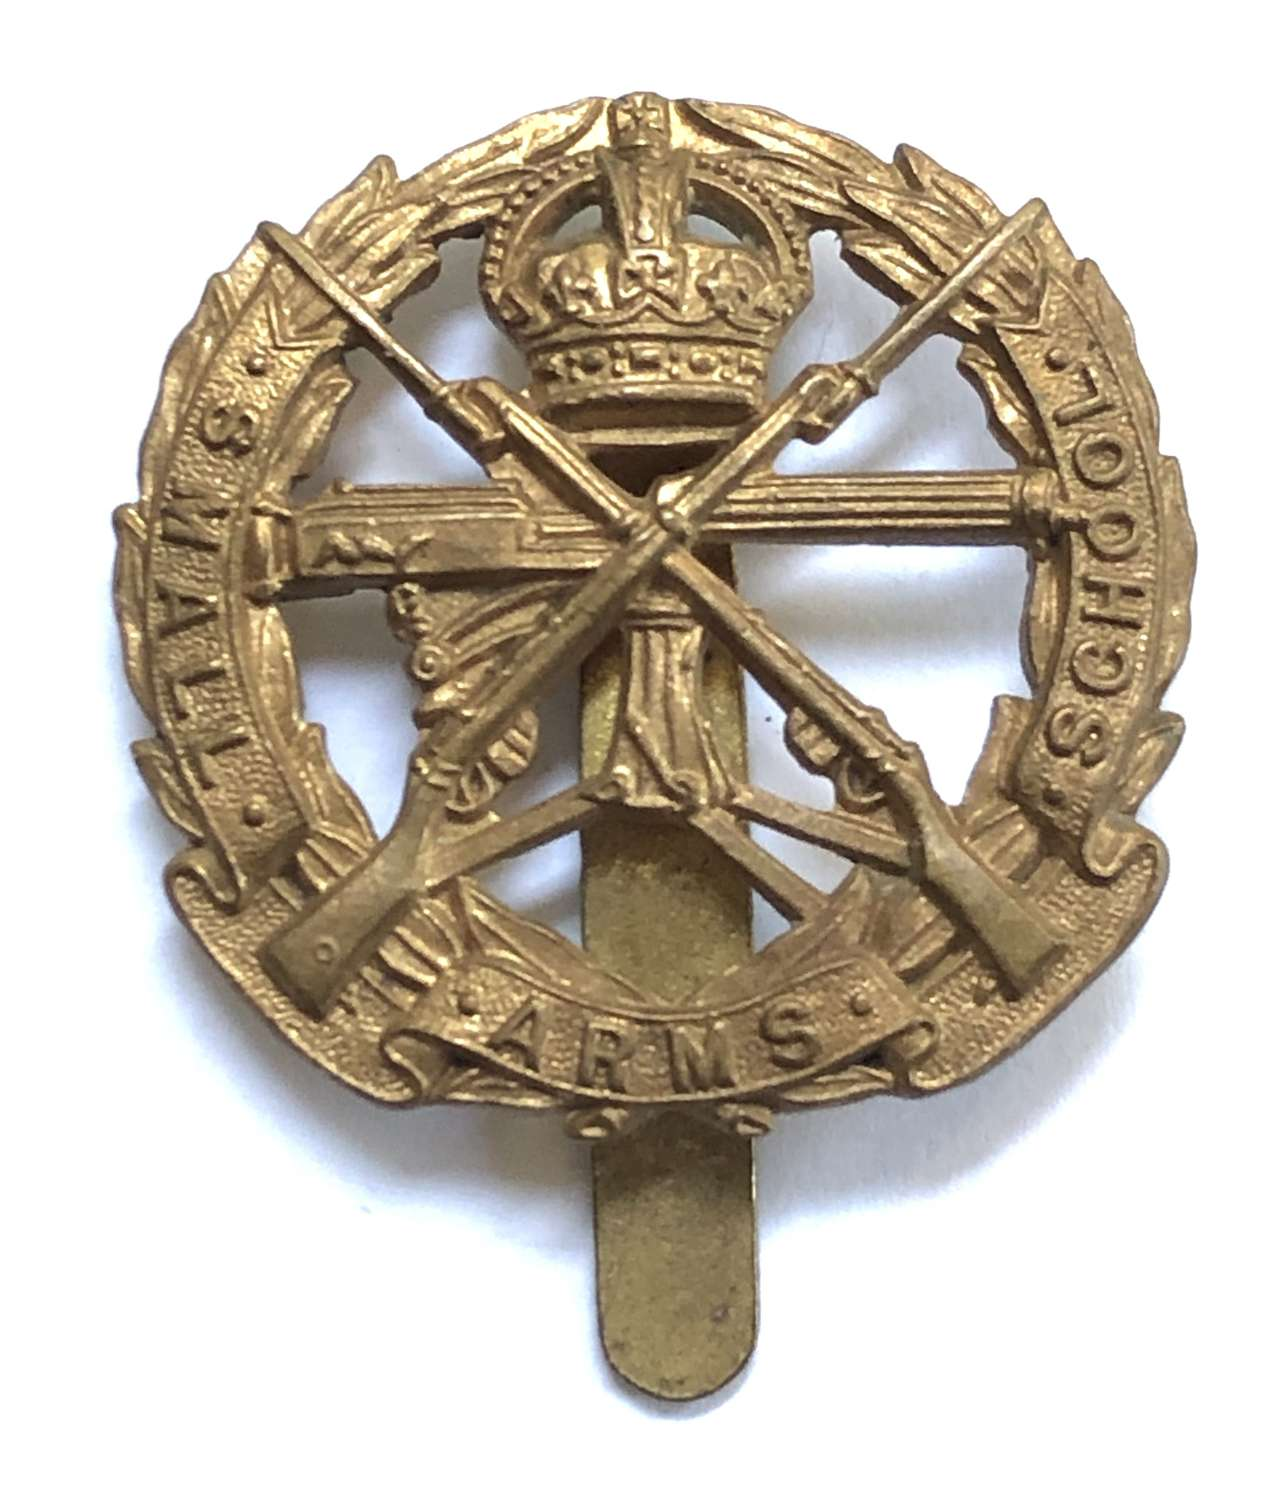 Small Arms School cap badge circa 1926-52 by Firmin, London